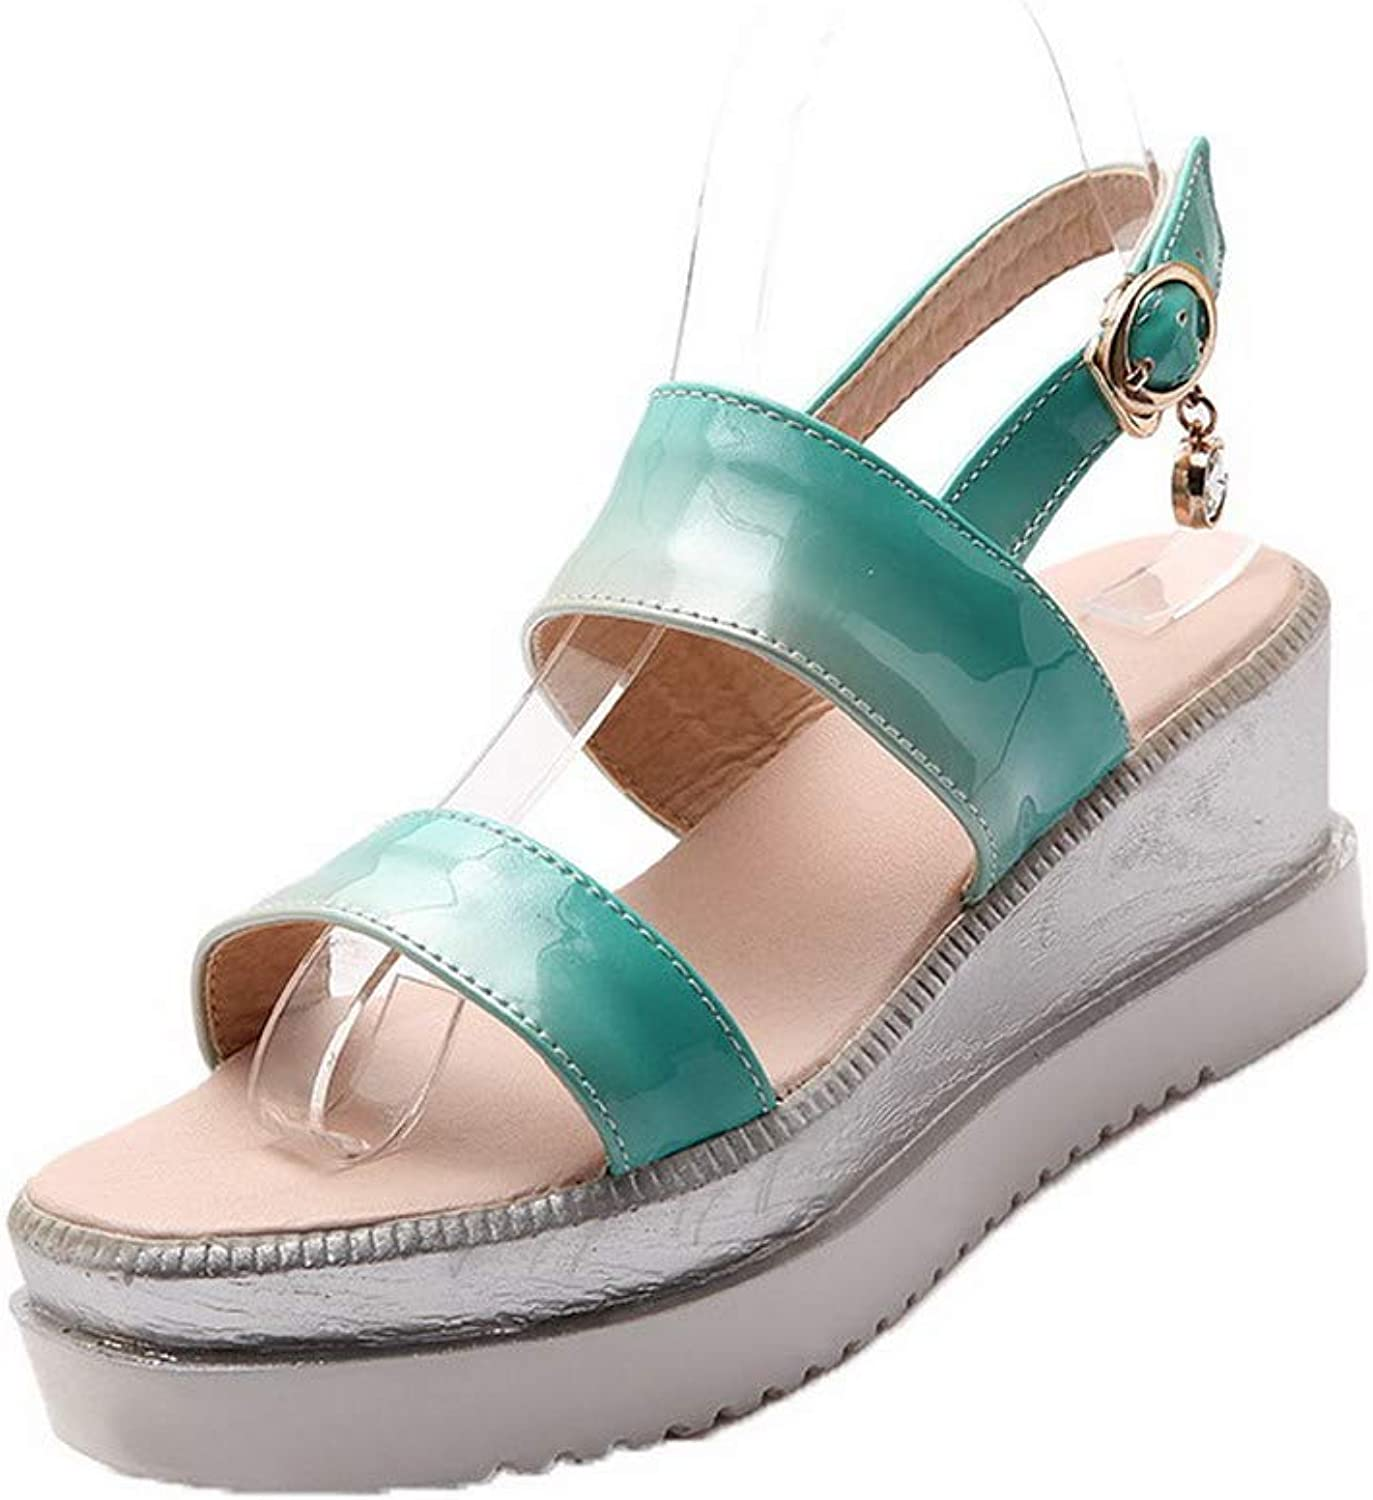 AmoonyFashion Women's Patent Leather Buckle Open-Toe Kitten-Heels Solid Sandals, BUTLT007398